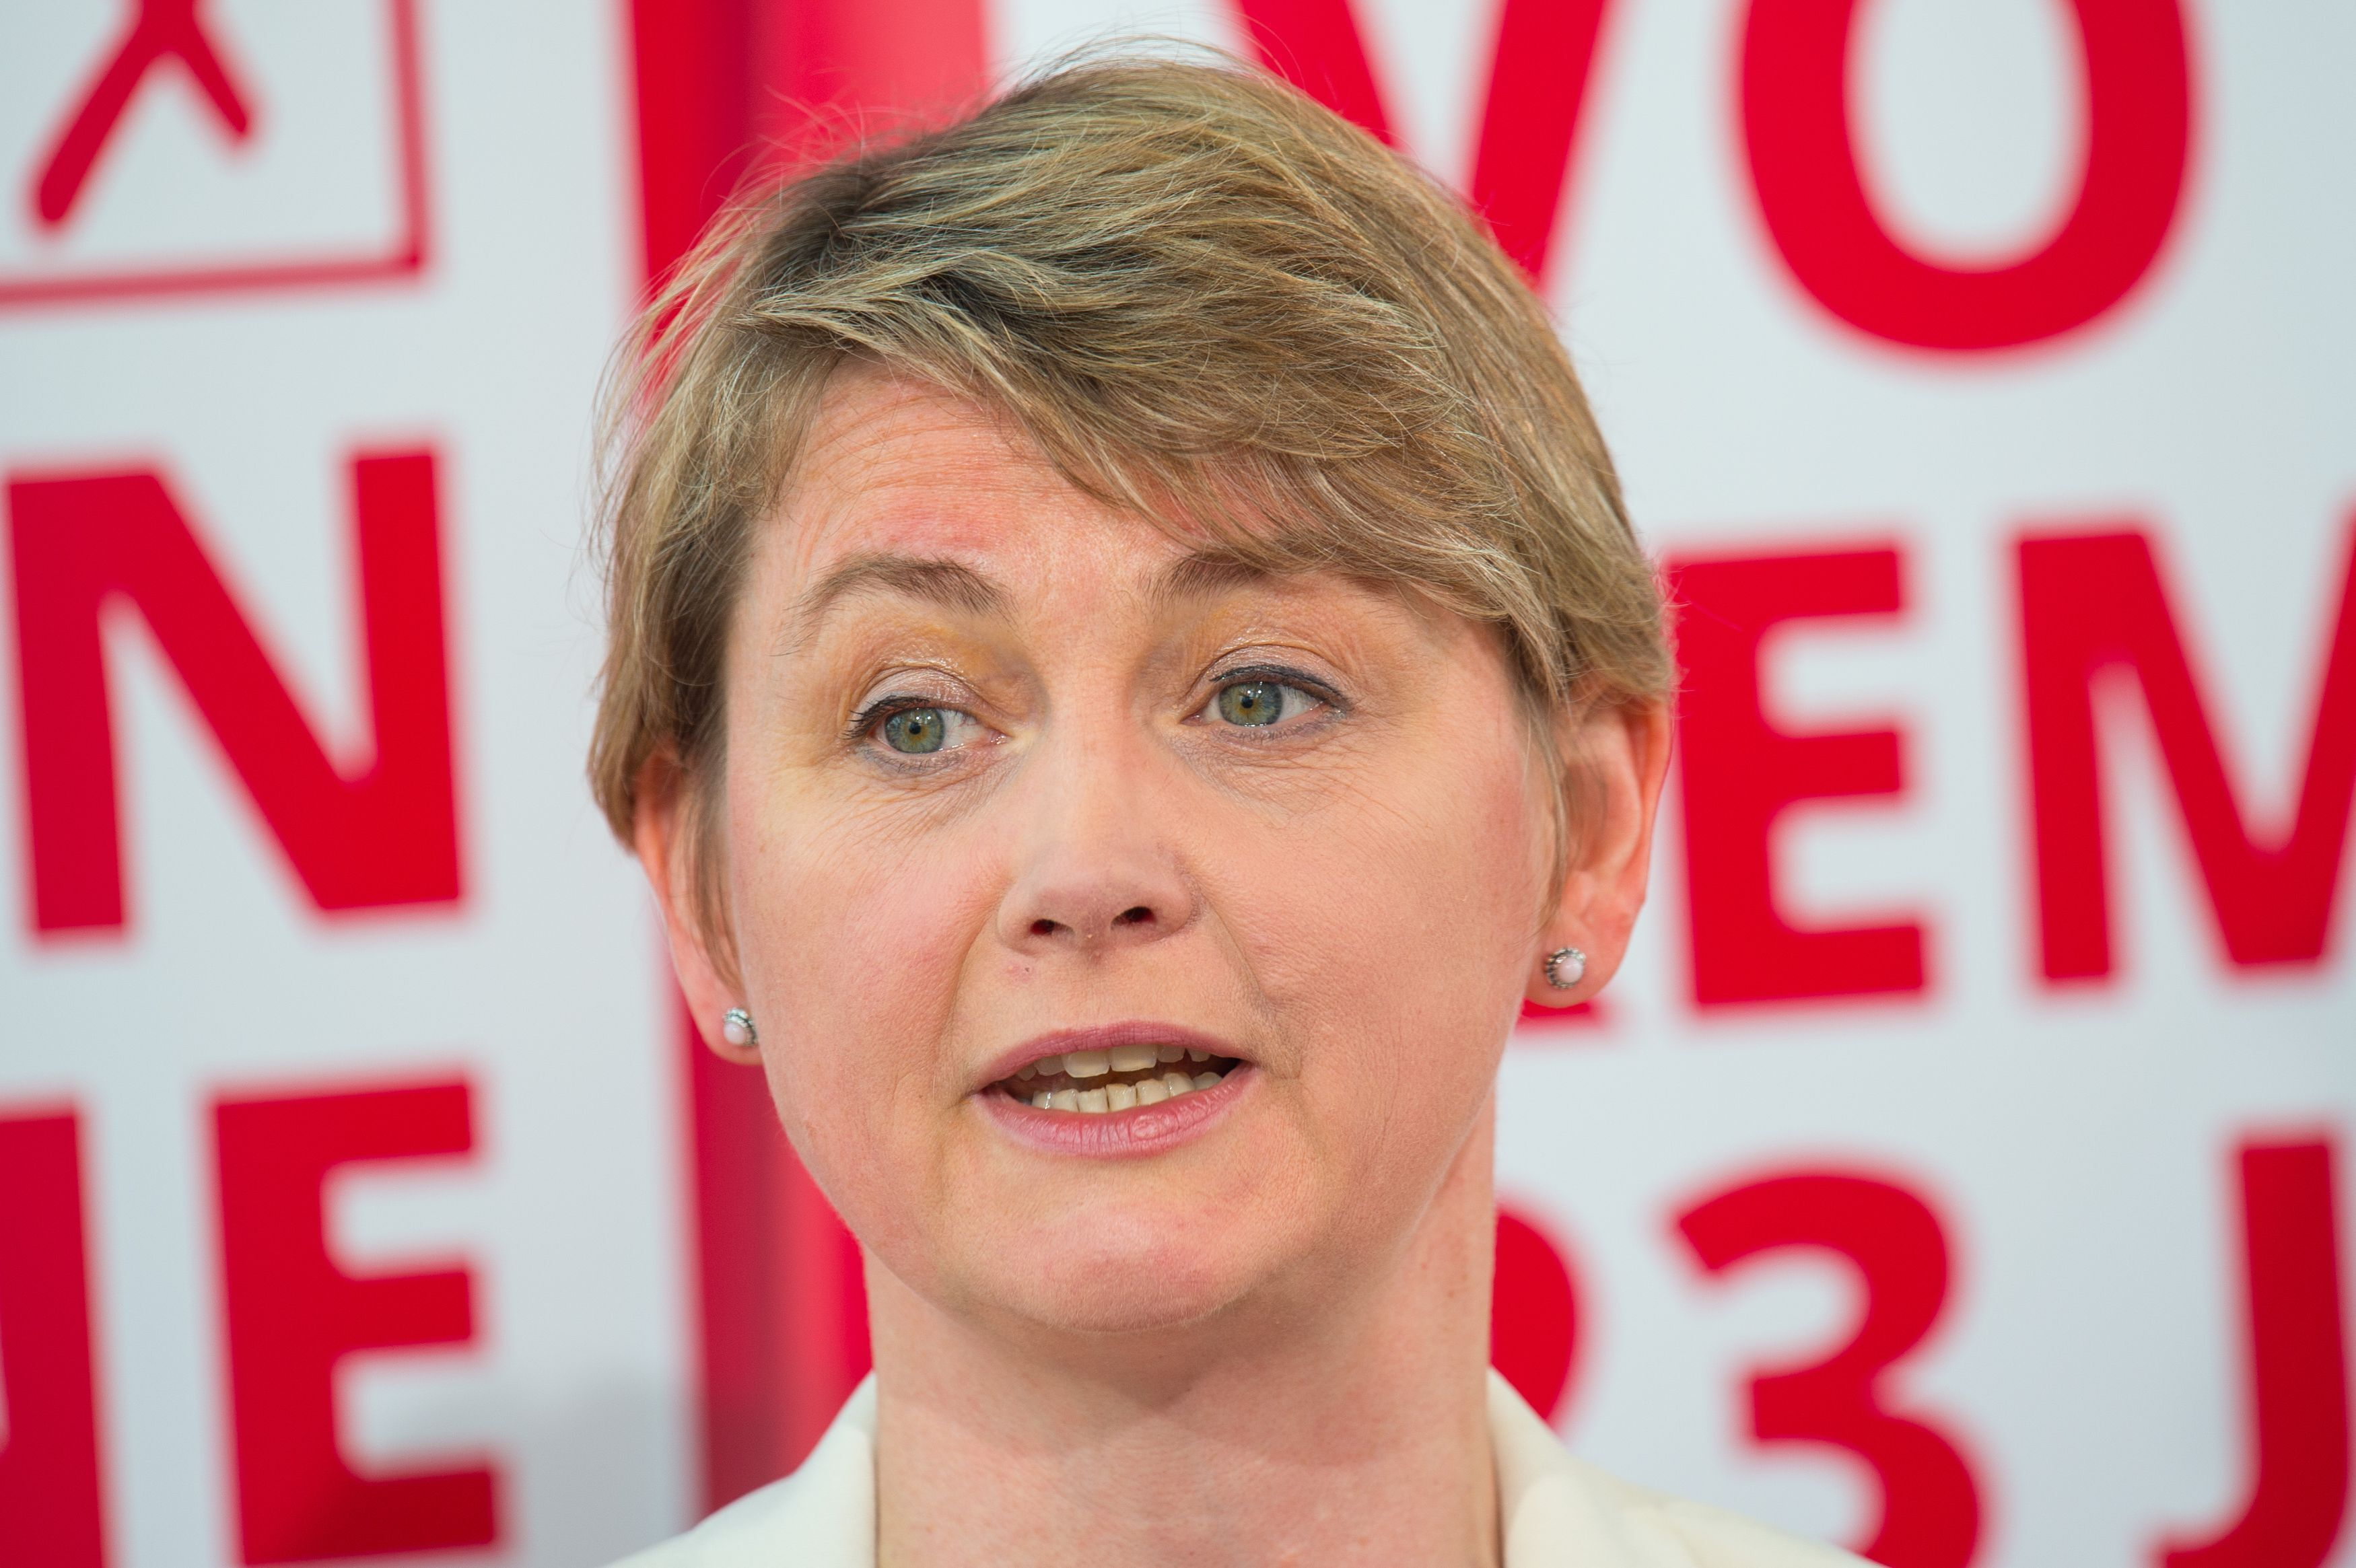 Yvette Cooper said the Home Office response was a'complete fudge